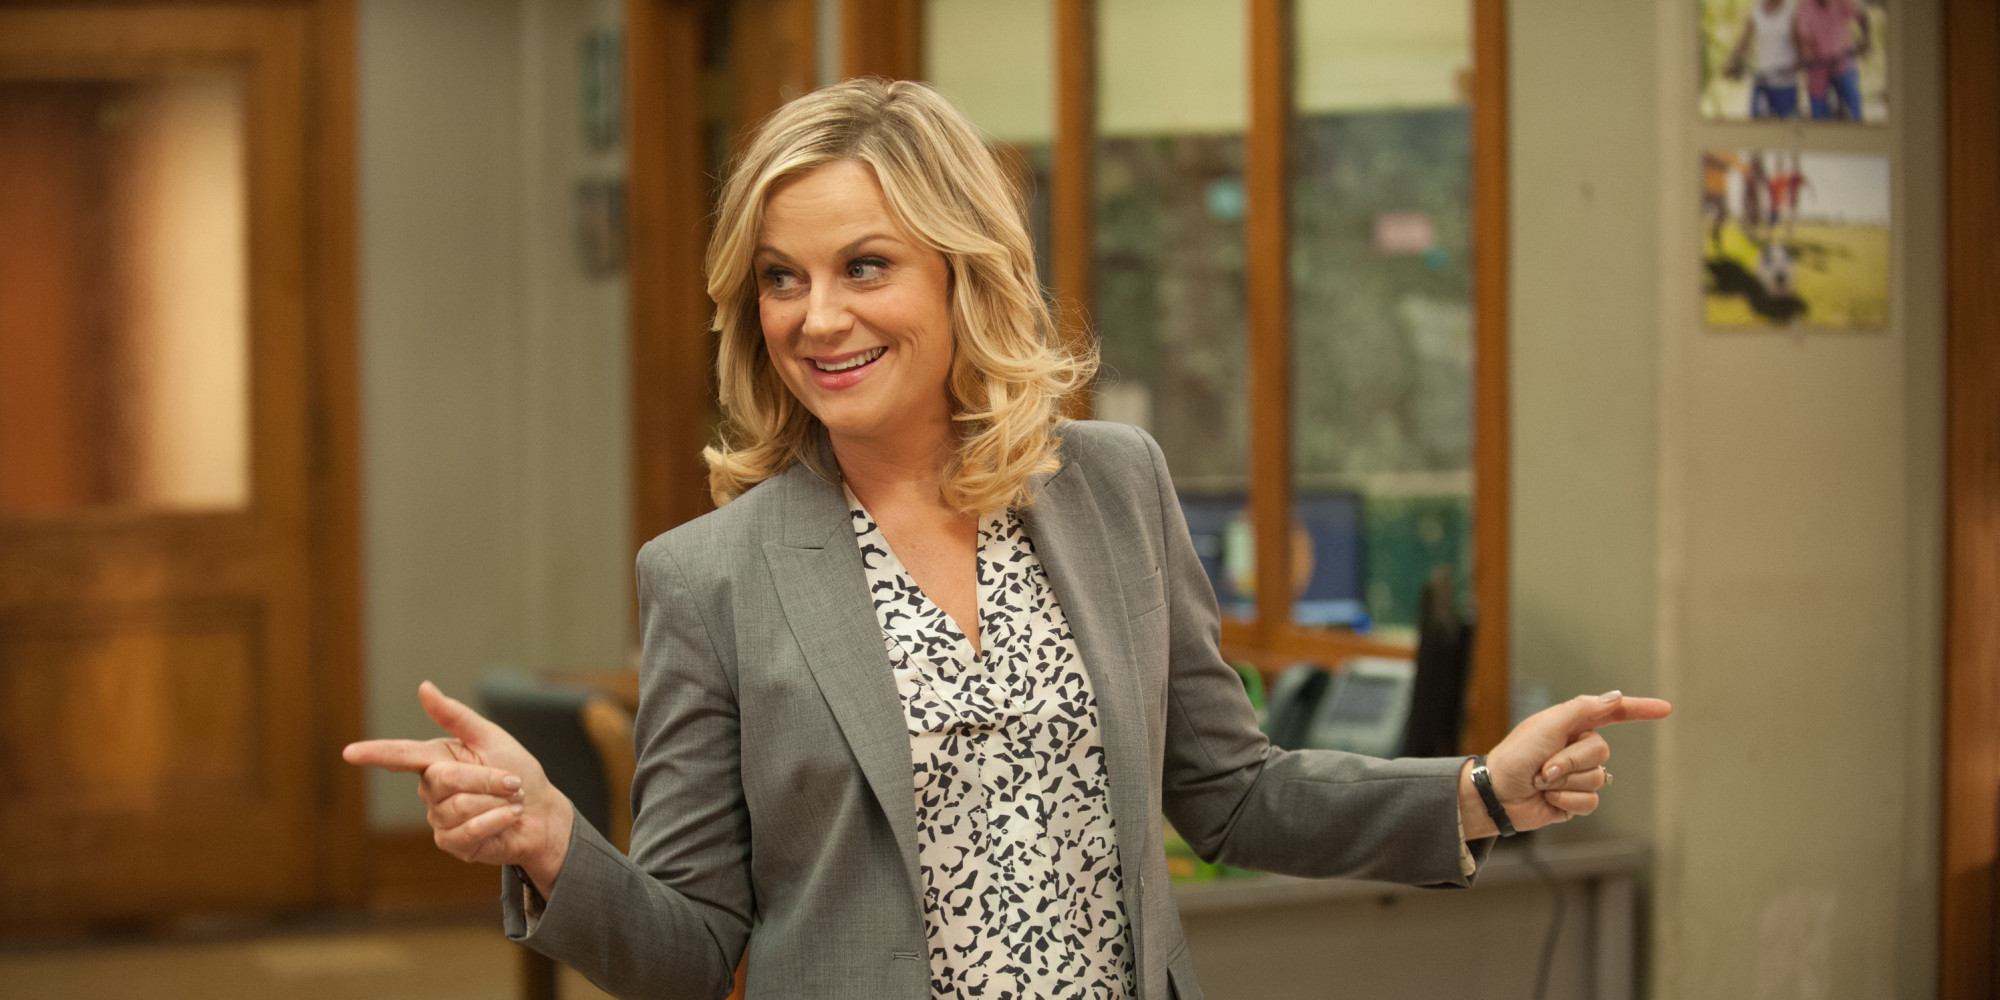 Everything I need to know, I learned from Leslie Knope